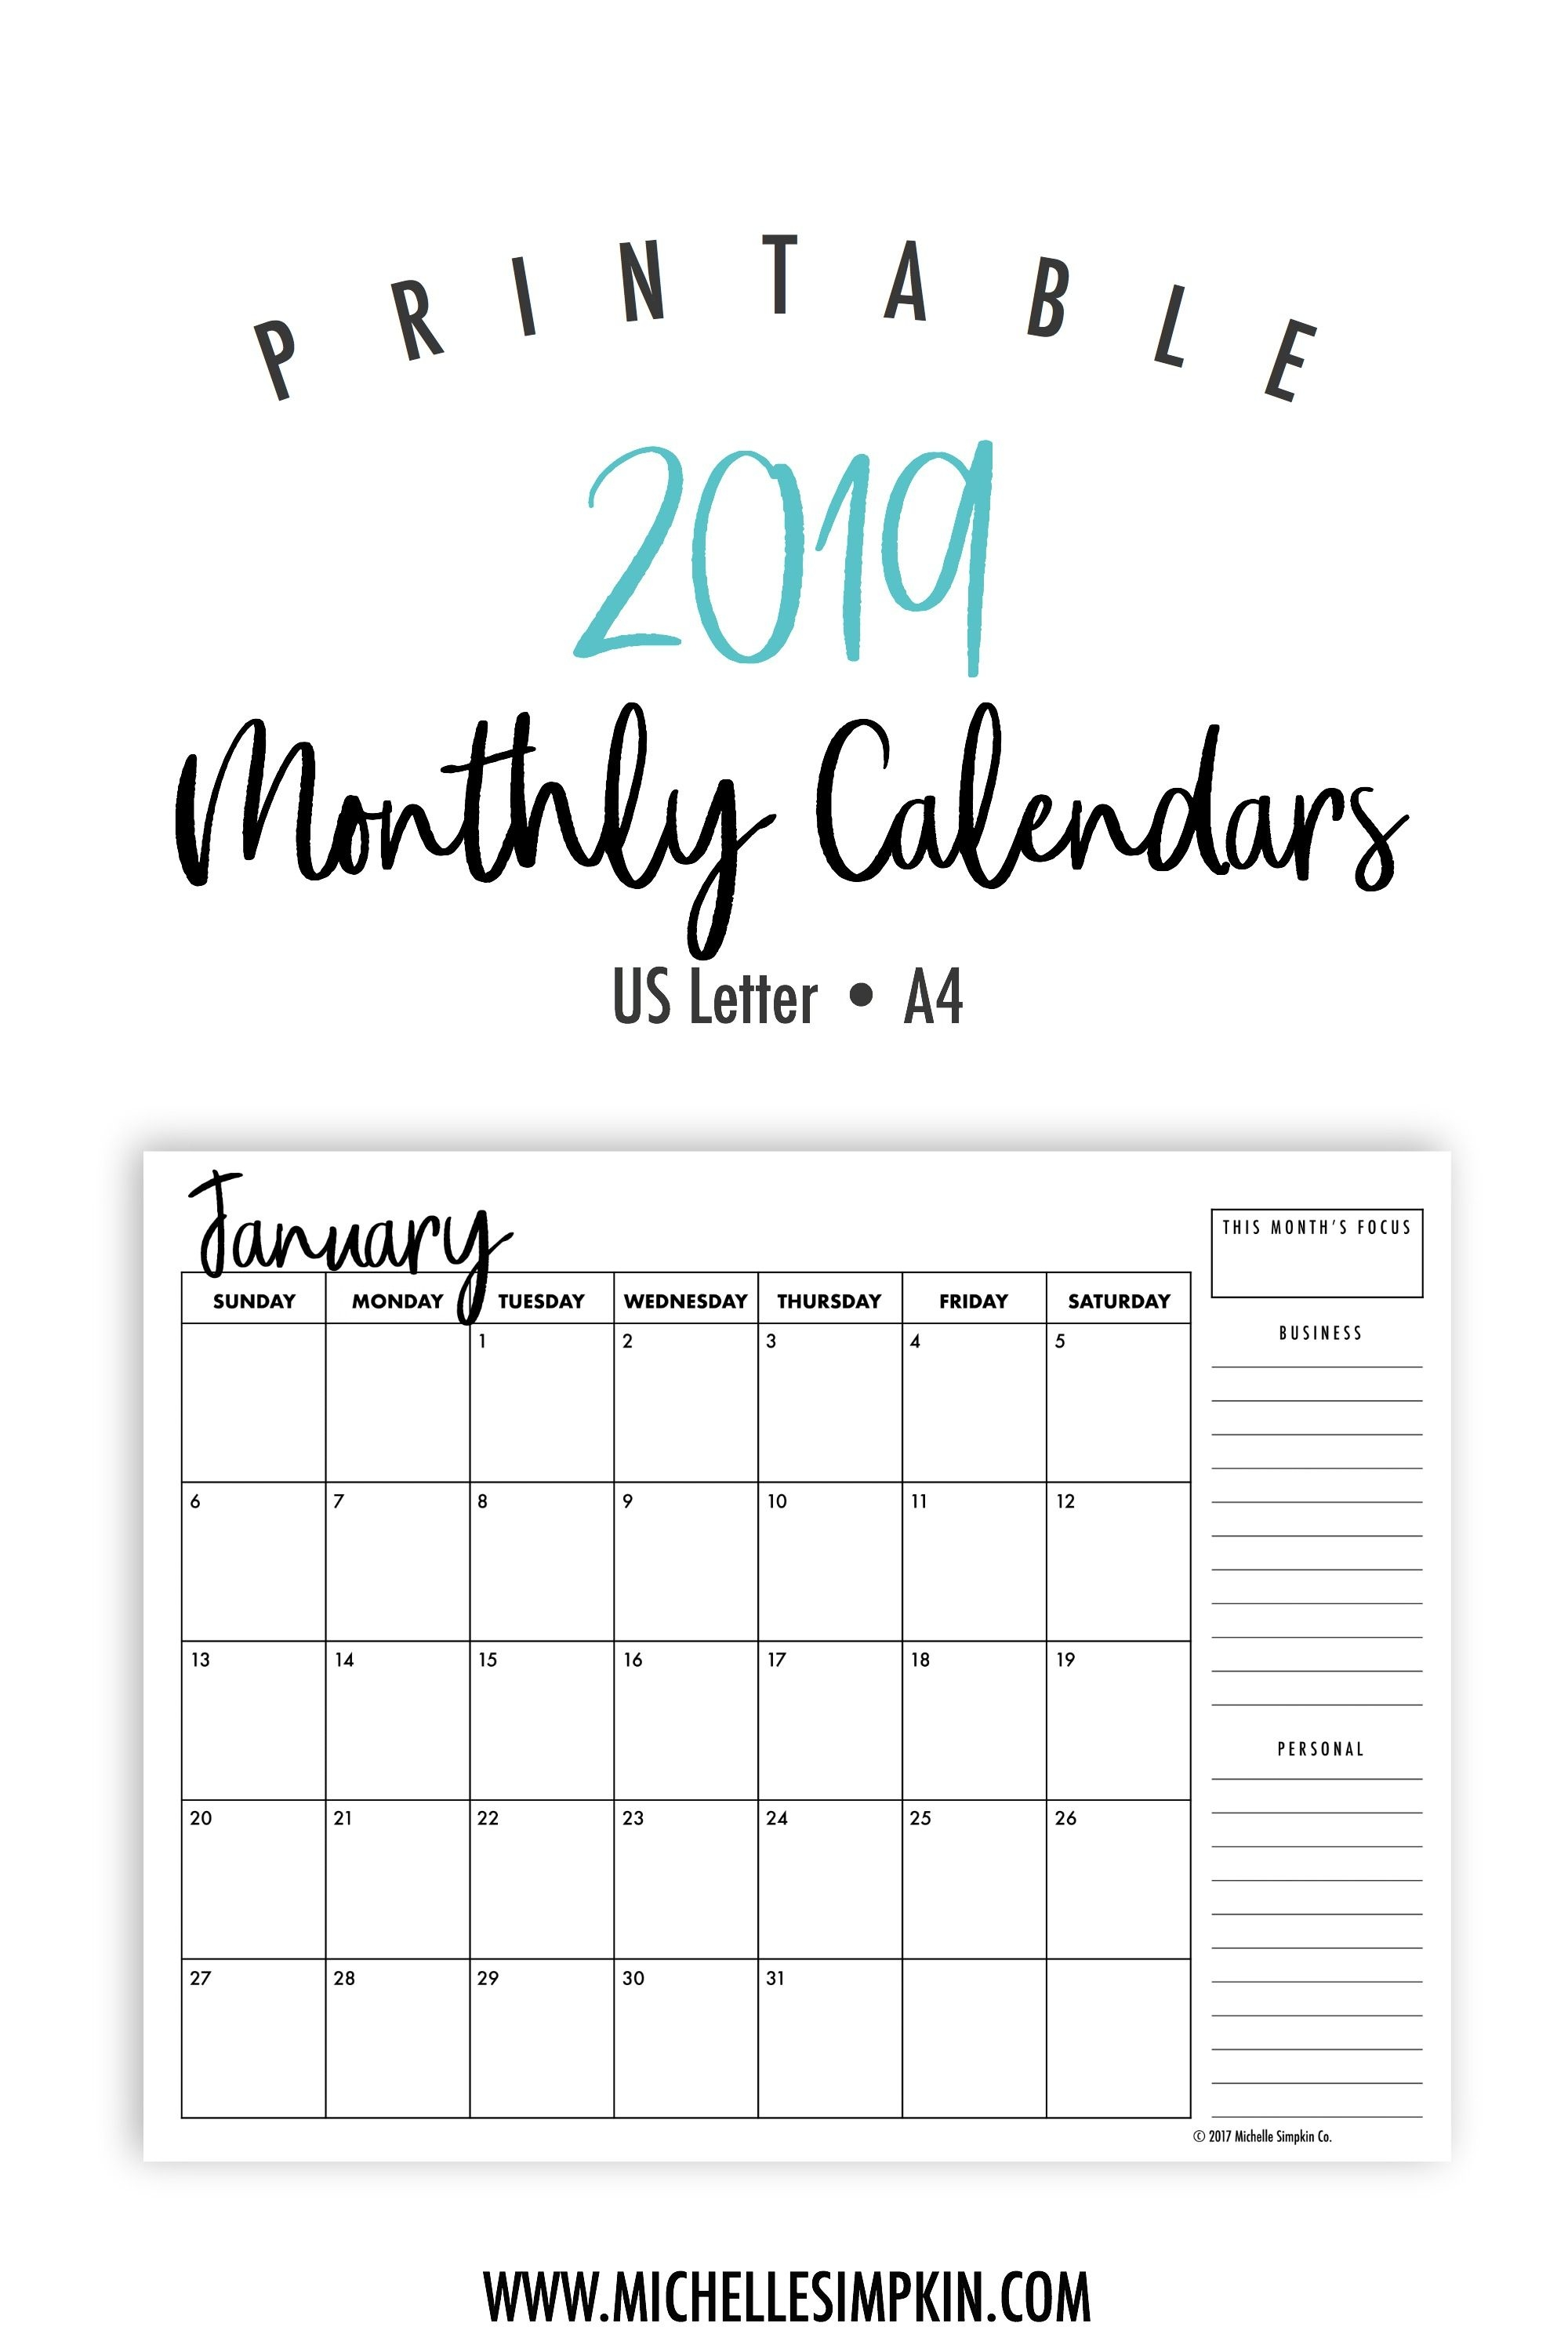 2019 Printable Calendars Plan Out Next Year With These Ink